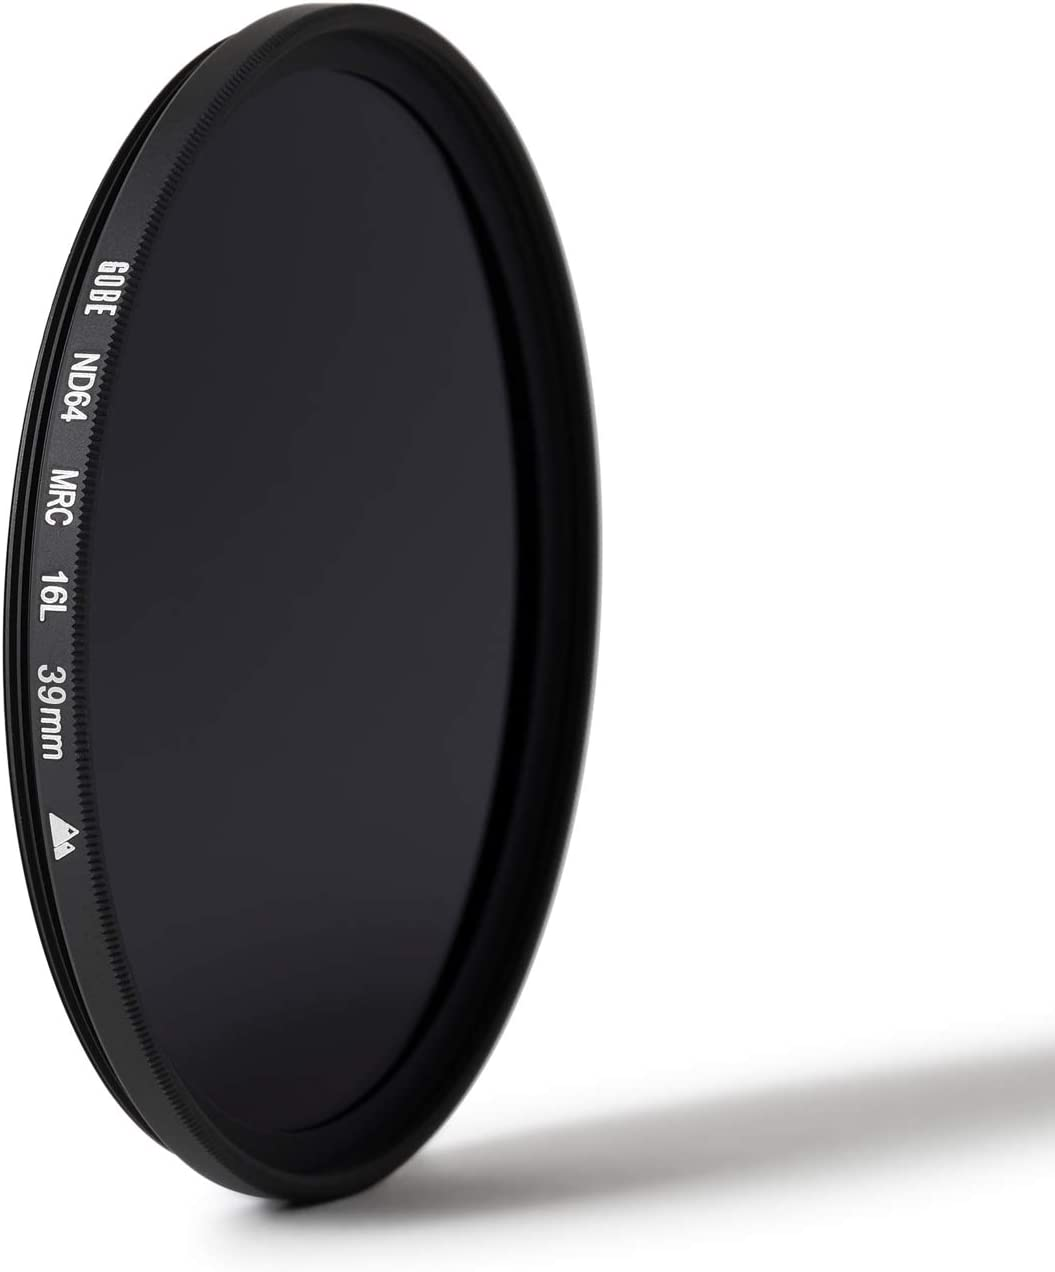 6 Stop Gobe 46mm ND64 ND Lens Filter 2Peak